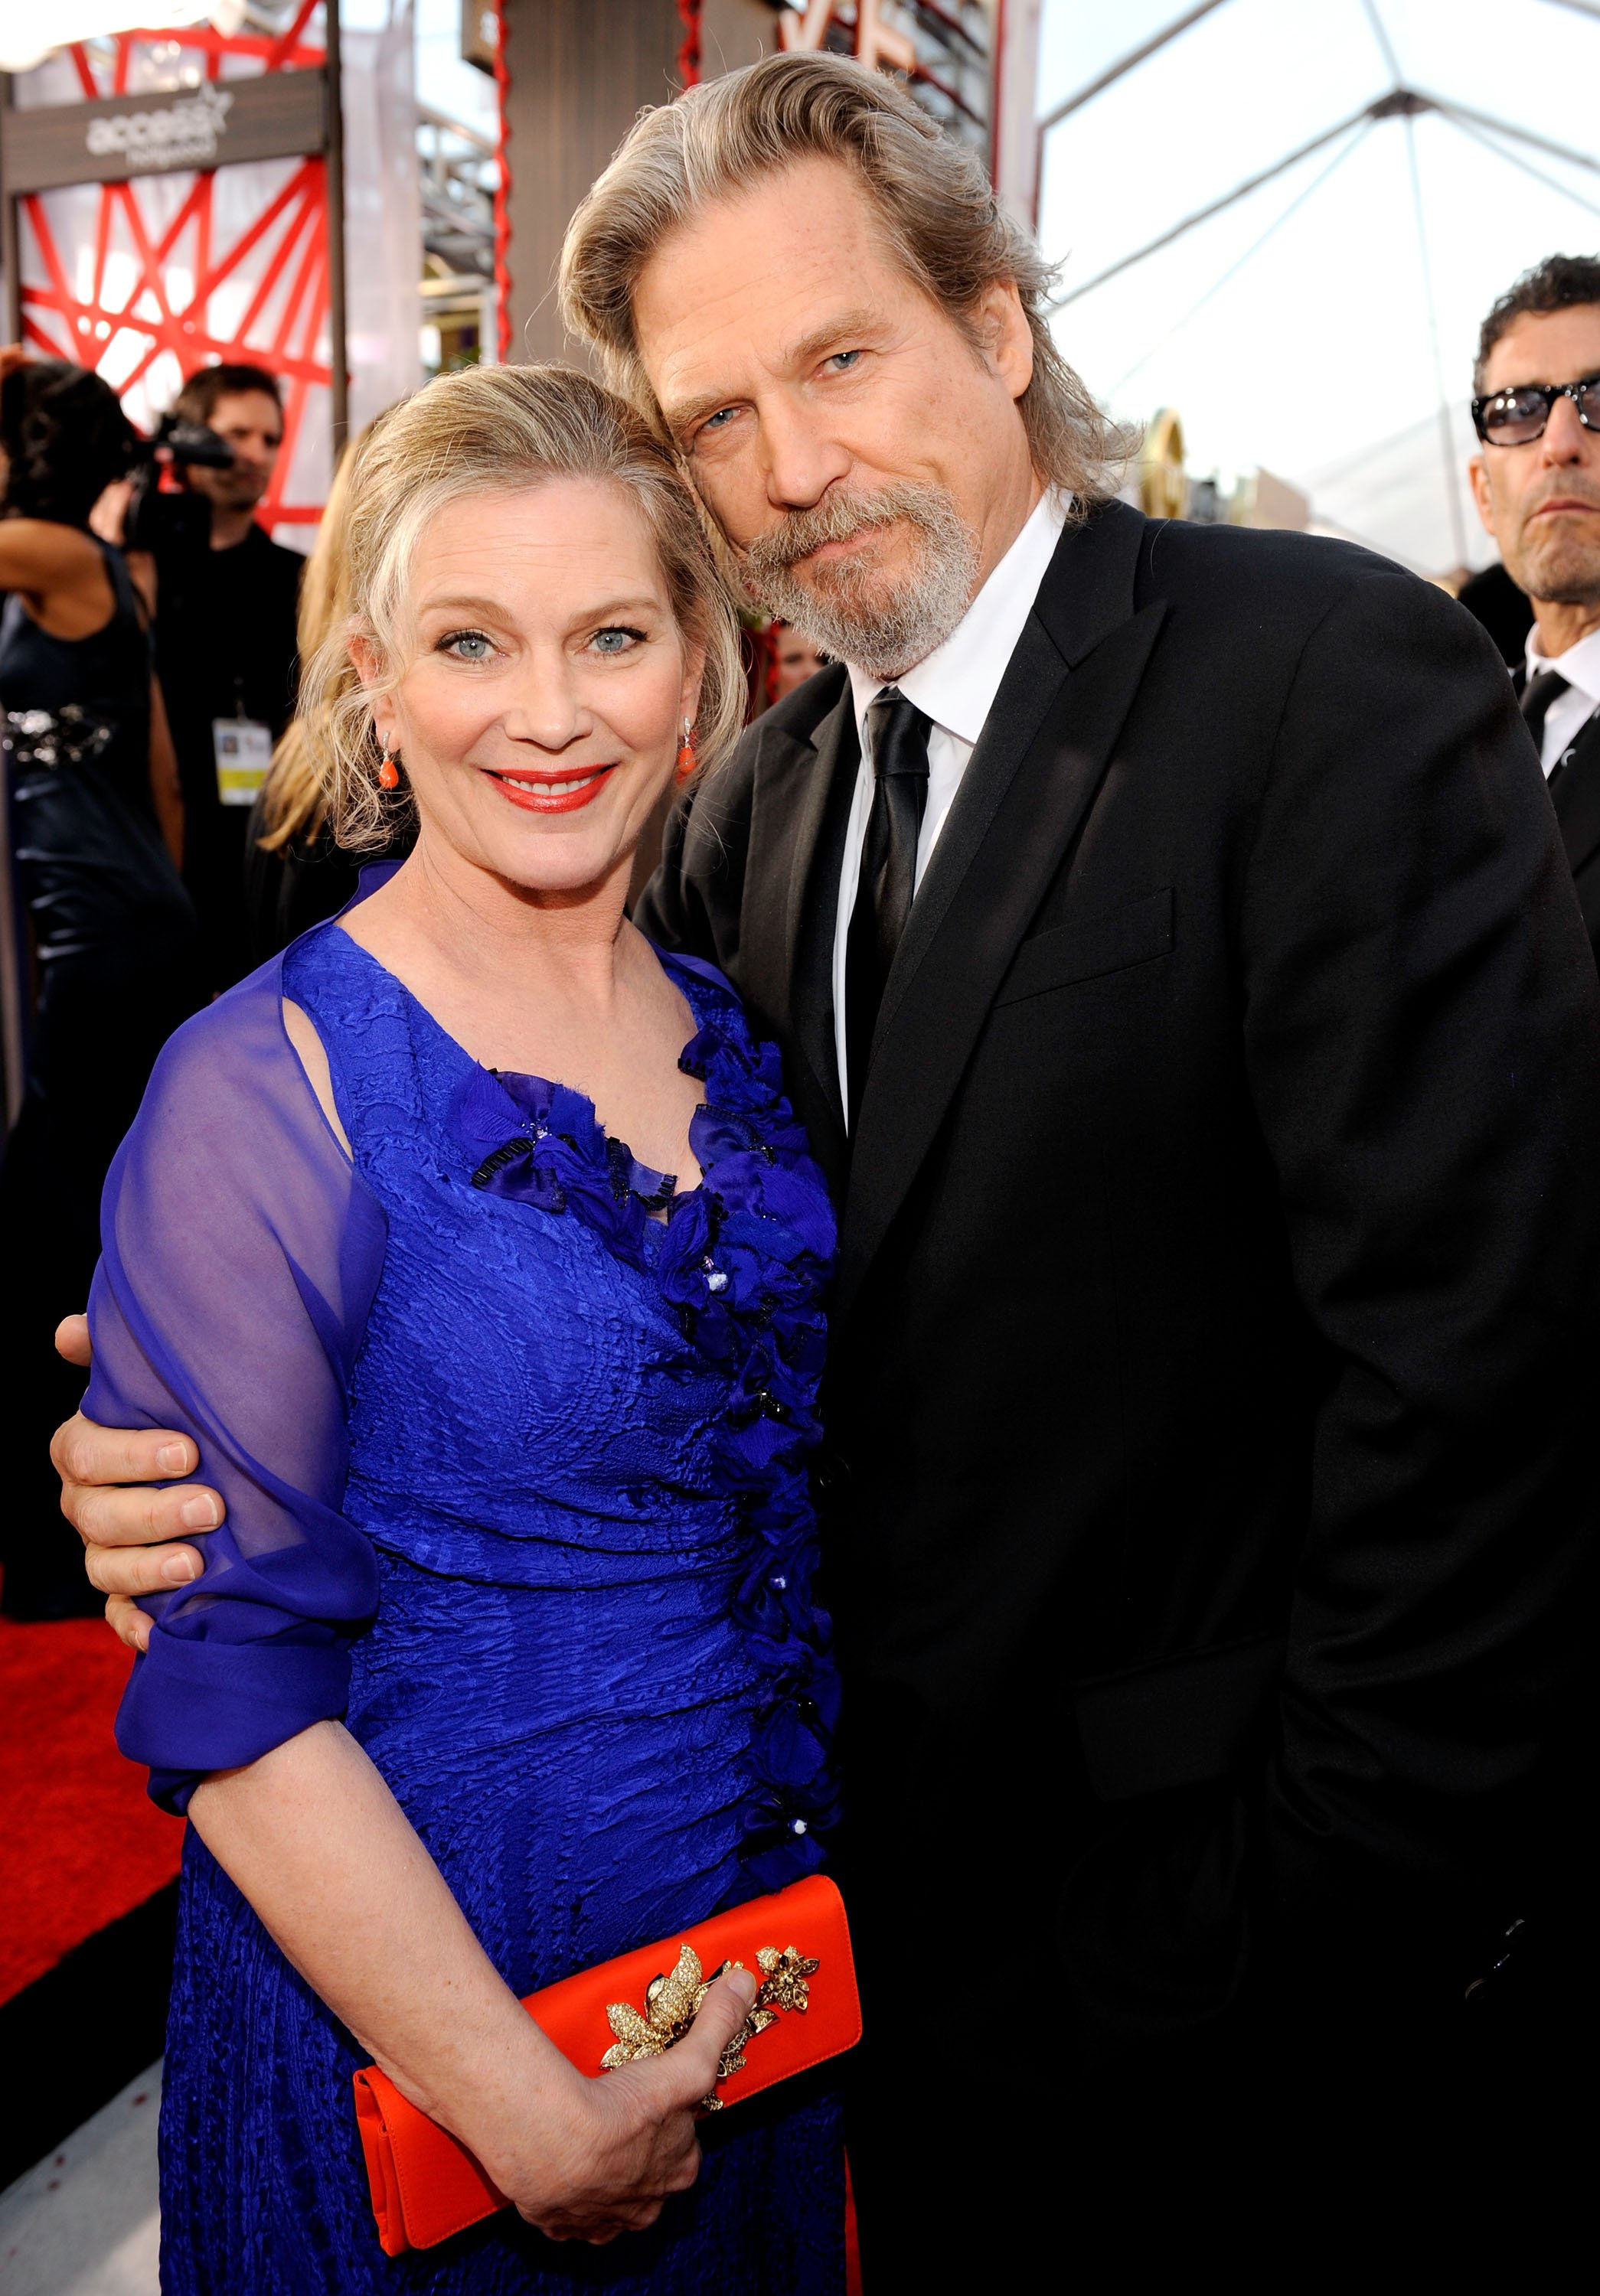 Susan Geston and actor Jeff Bridges arrive at the 16th Annual Screen Actors Guild Awards on January 23, 2010. | Source: Getty Images